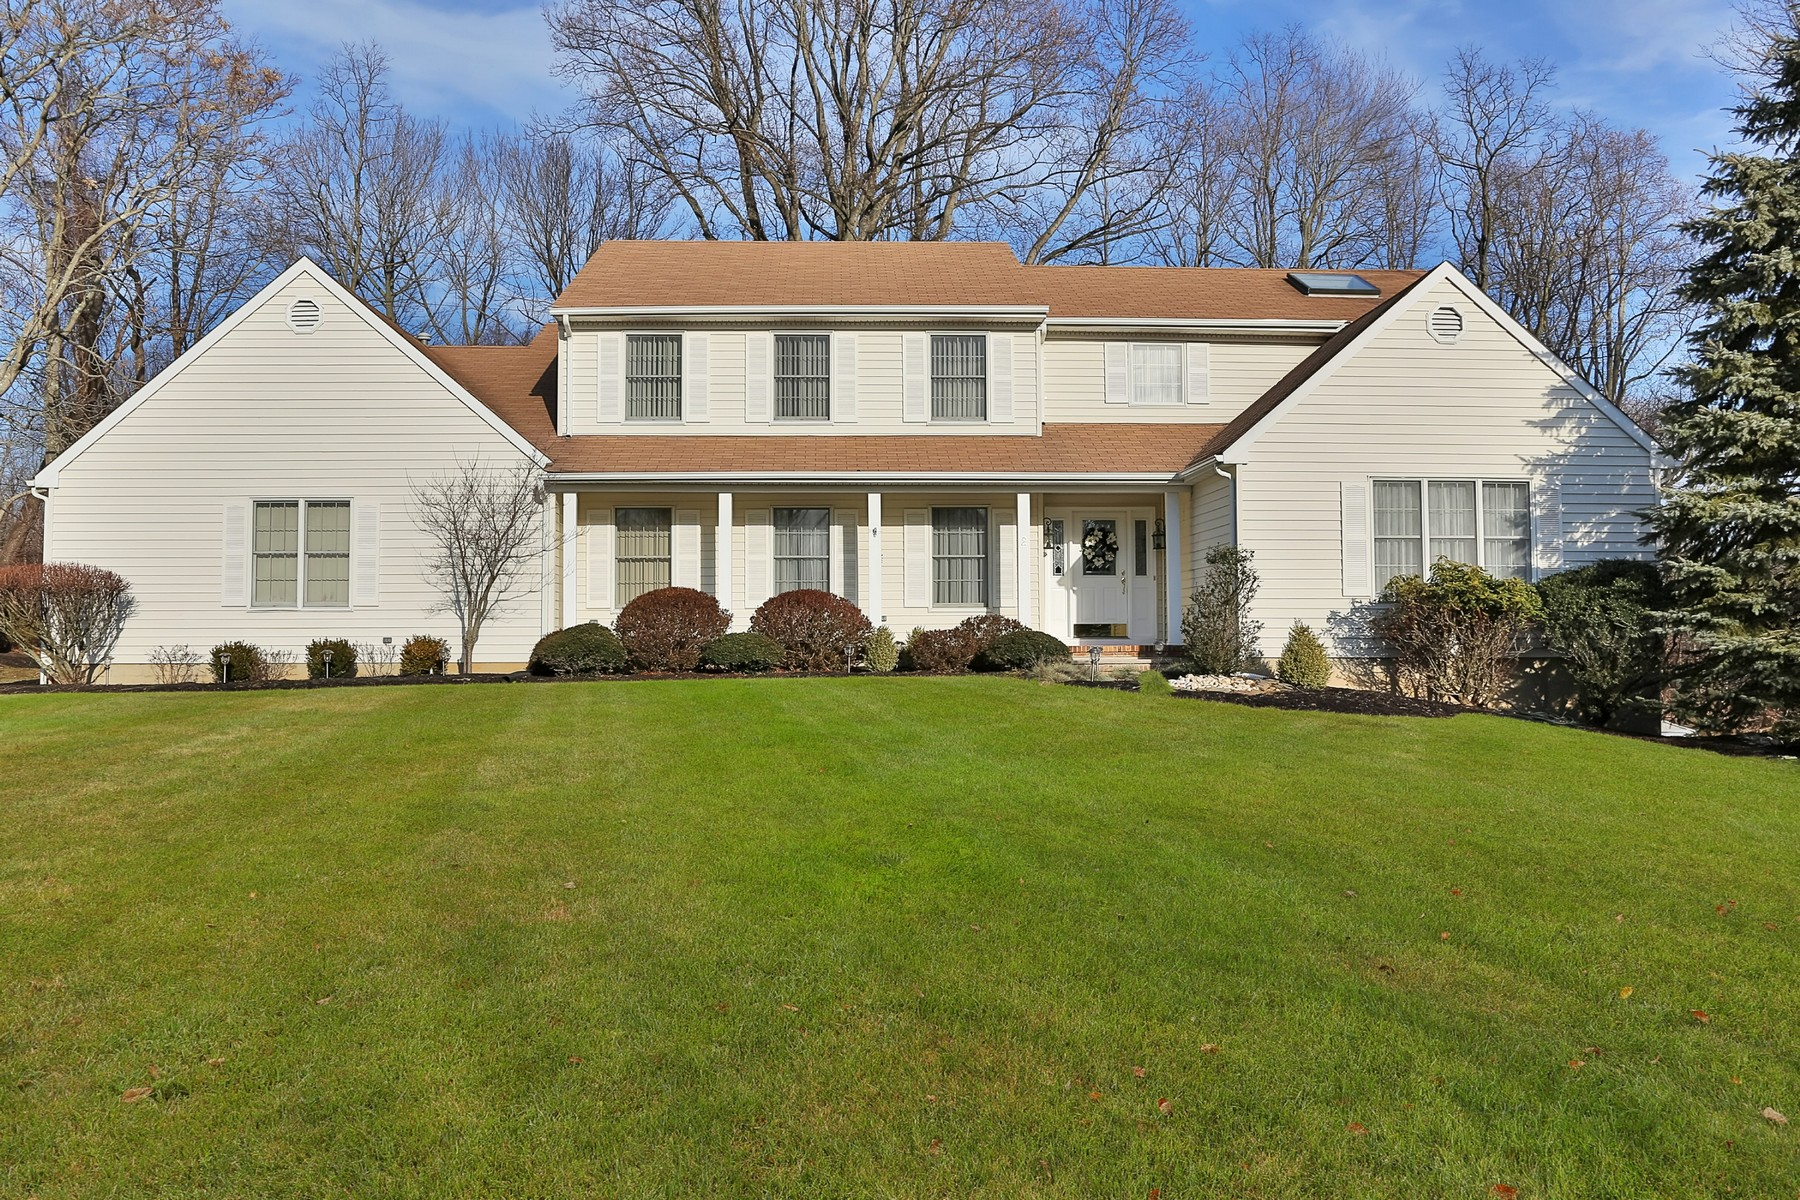 Property For Sale at 2 S. Red Hawk Road, Colts Neck